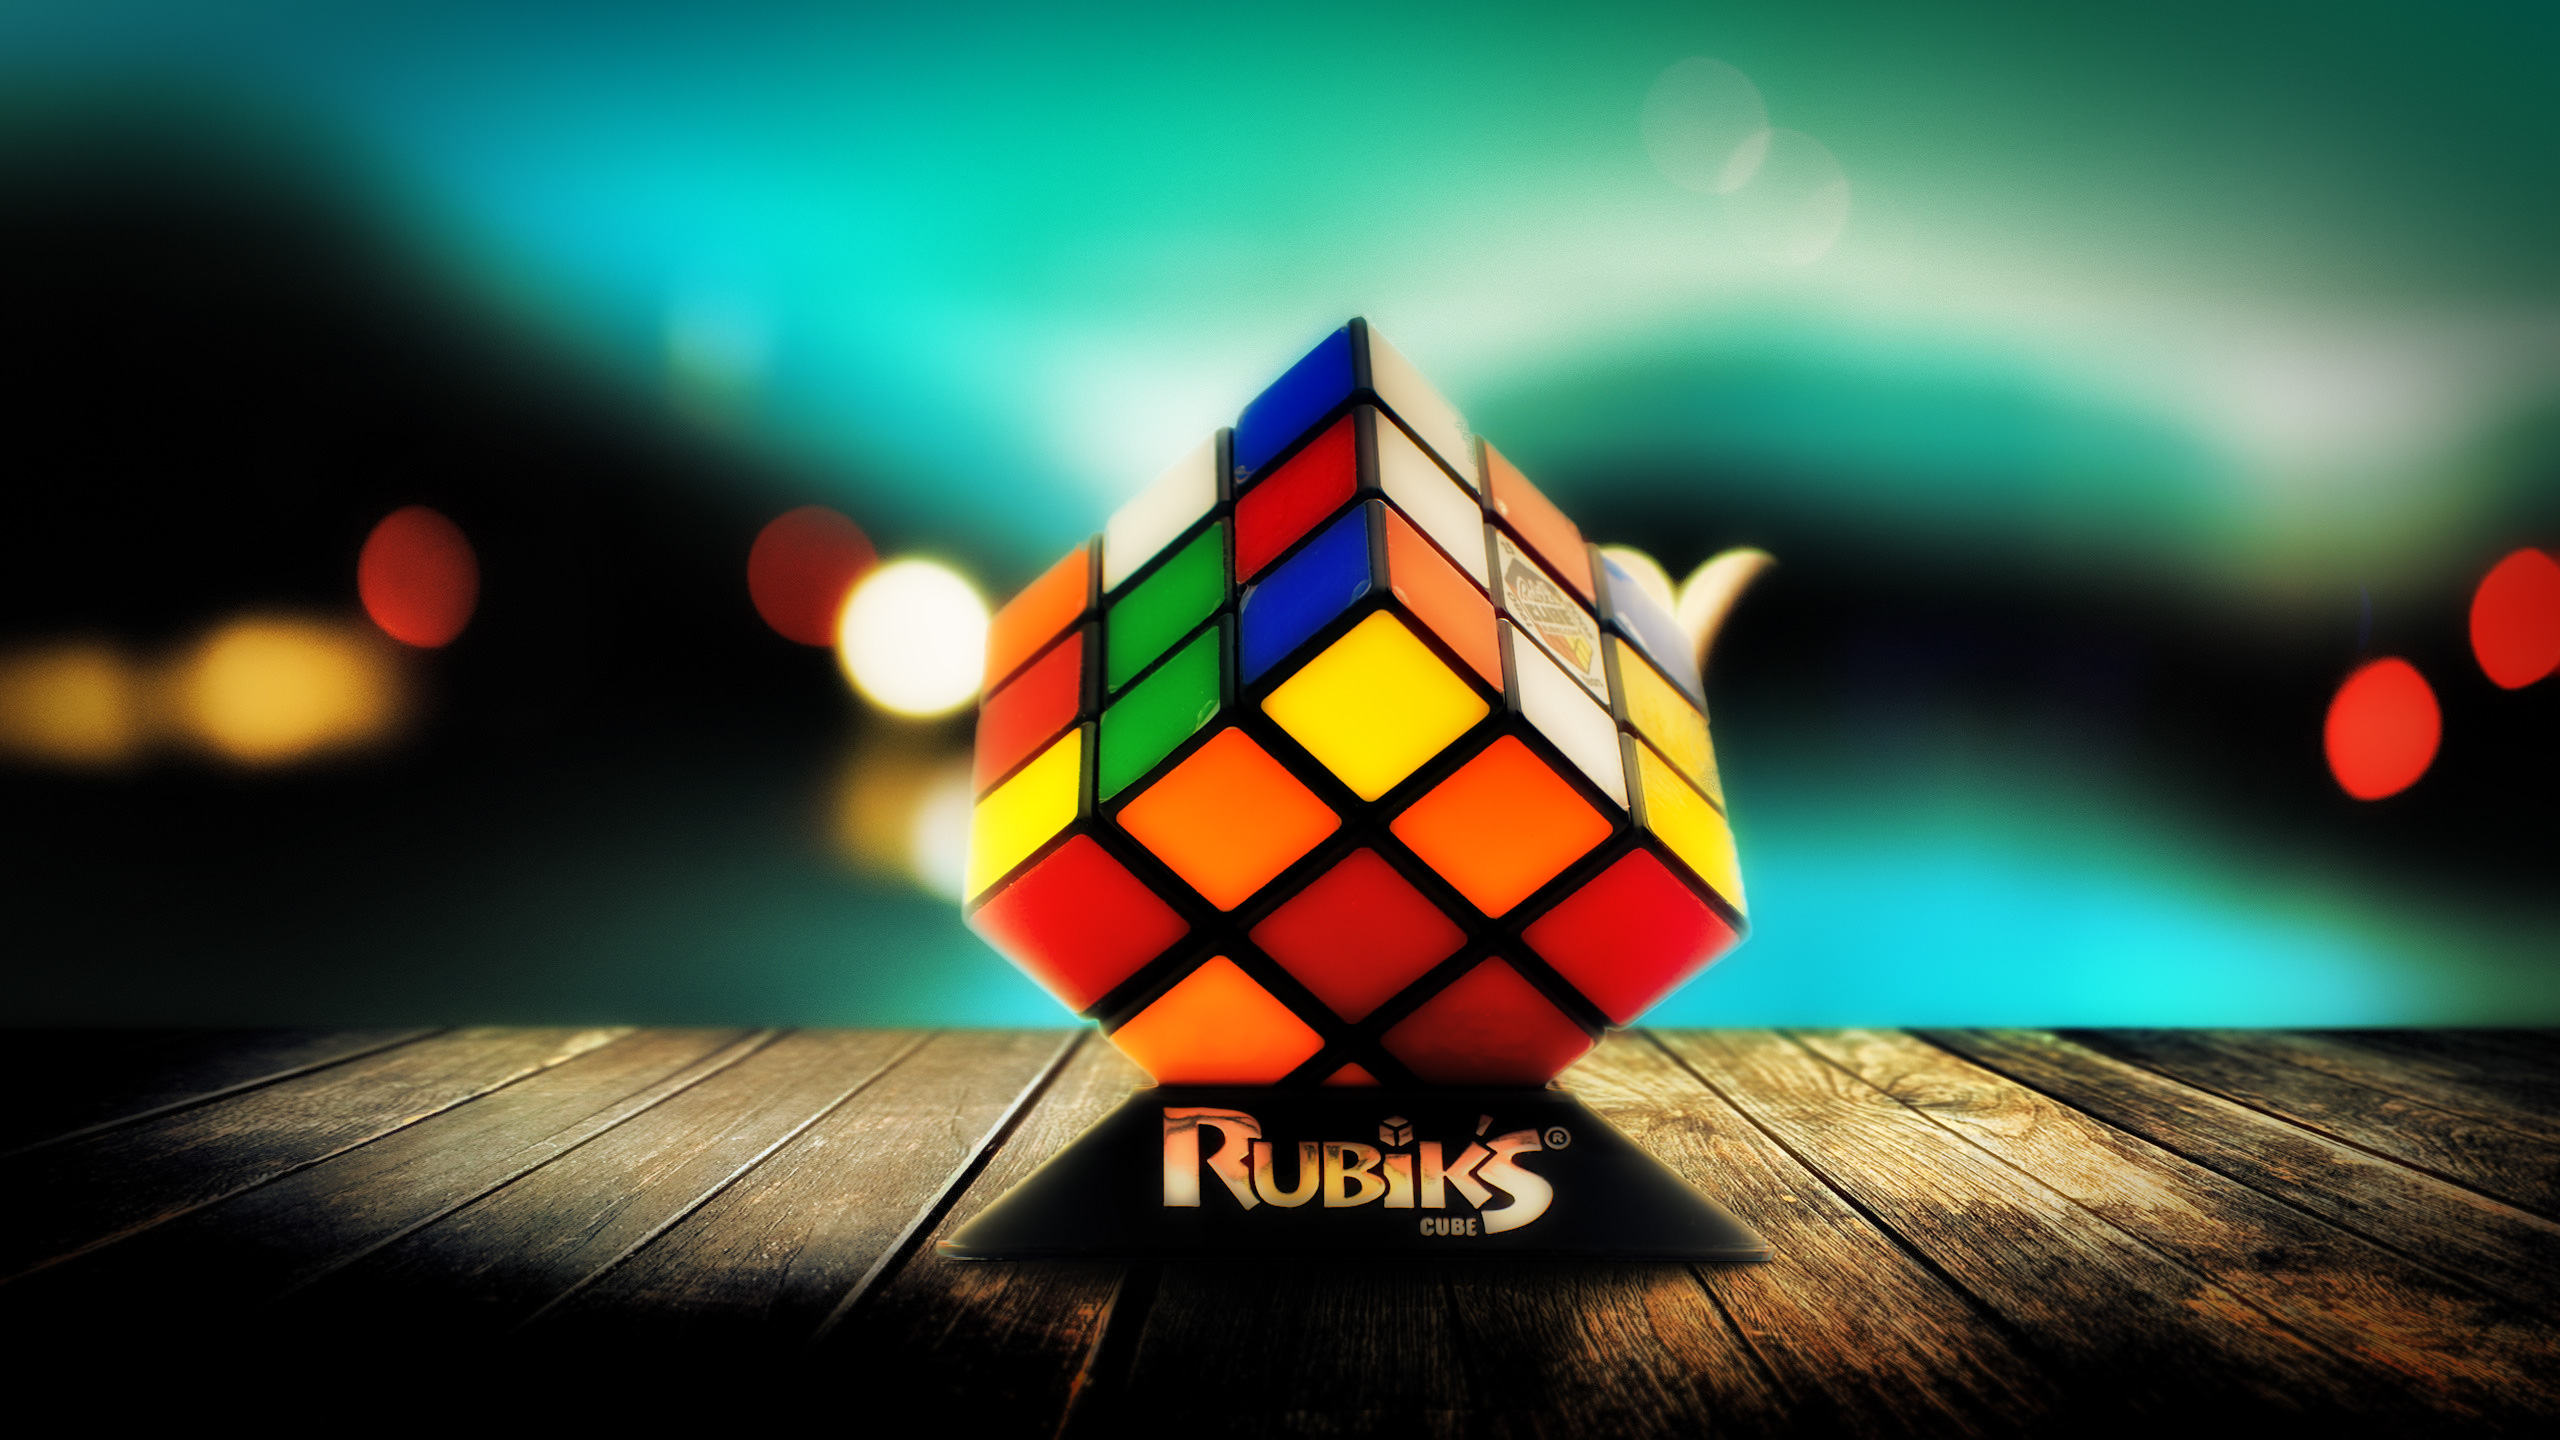 What Can We Learn from the Rubiks Cube about Leadership 2560x1440